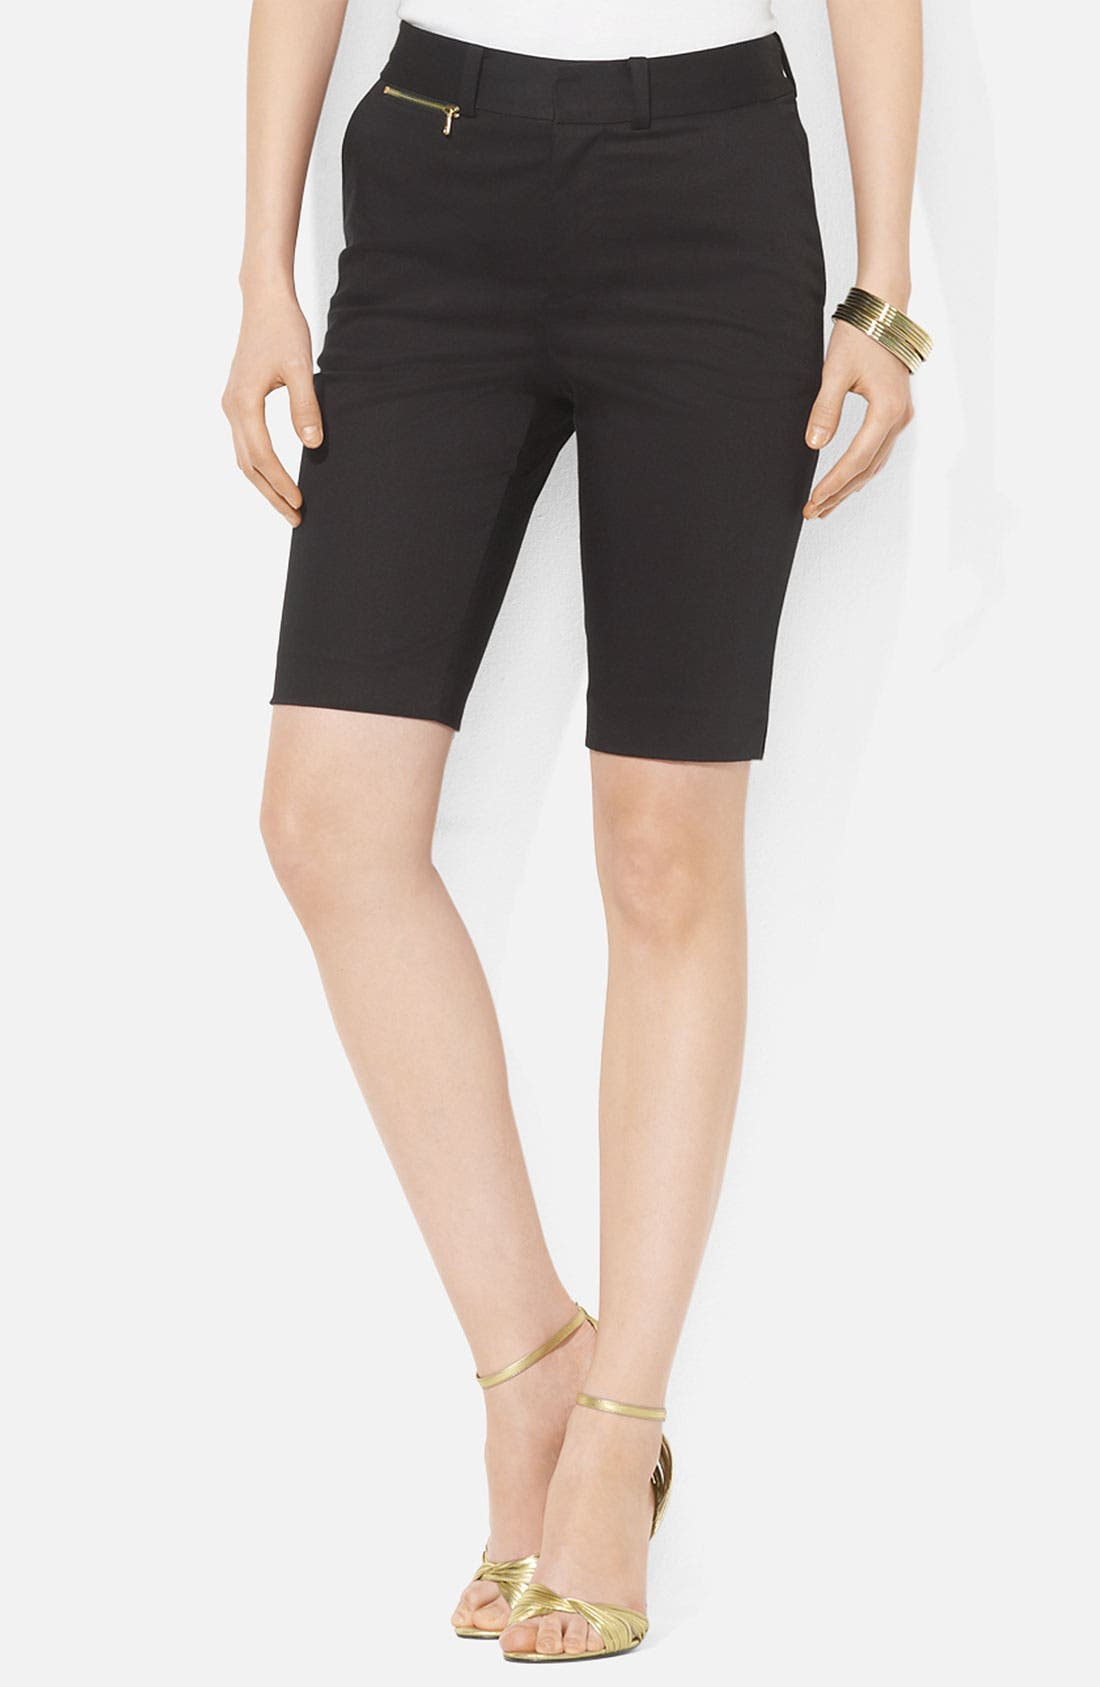 Alternate Image 1 Selected - Lauren Ralph Lauren Zip Coin Pocket Bermuda Shorts (Petite)